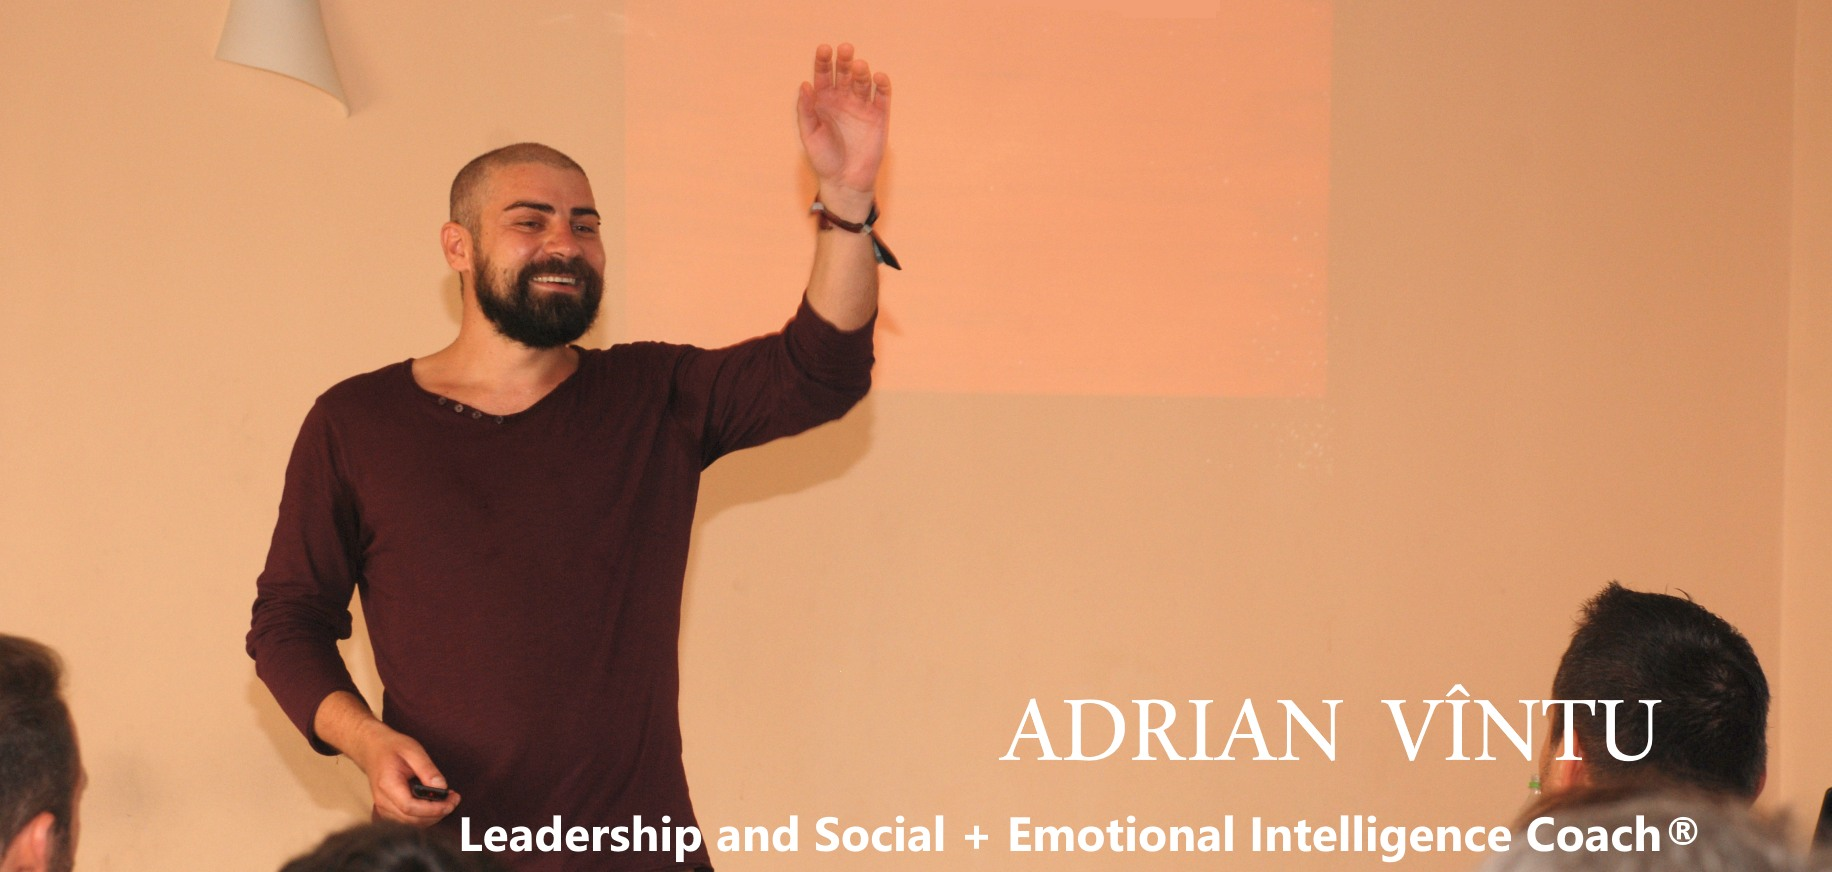 Adrian Vîntu - Leadership and Social + Emotional Intelligence Coach®